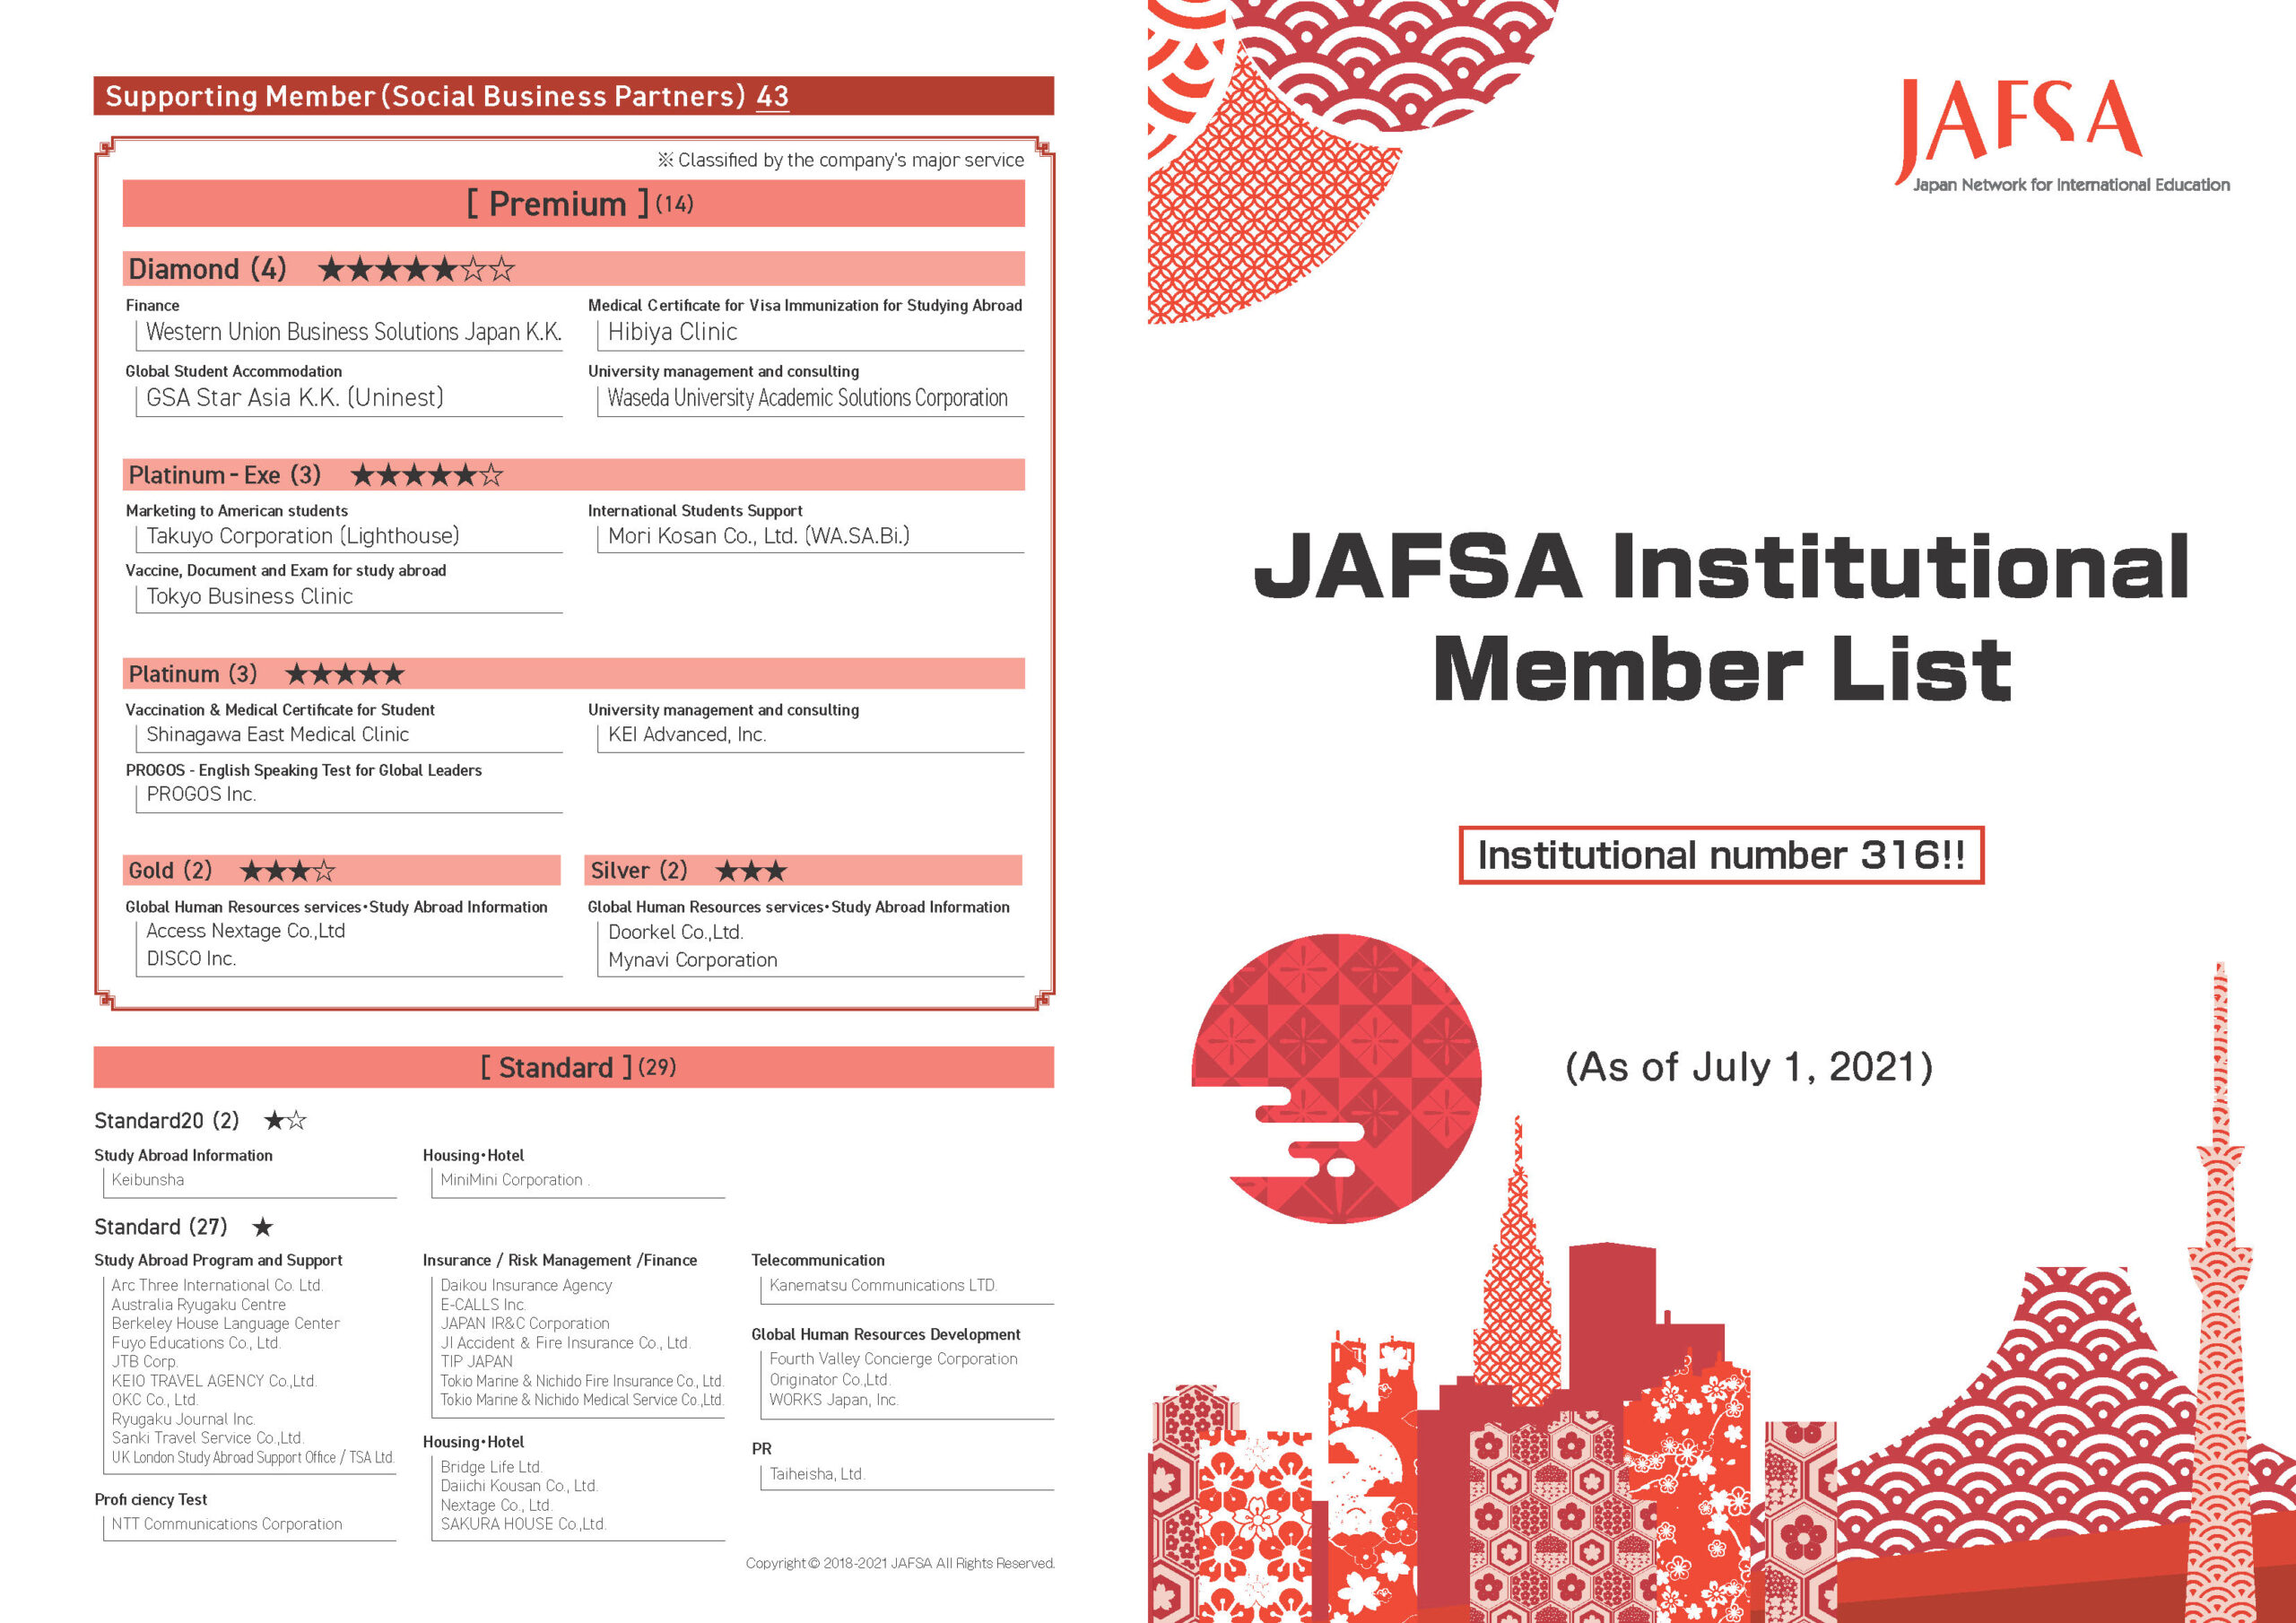 JAFSA Institutional Member List (as of July 1, 2021)_P1